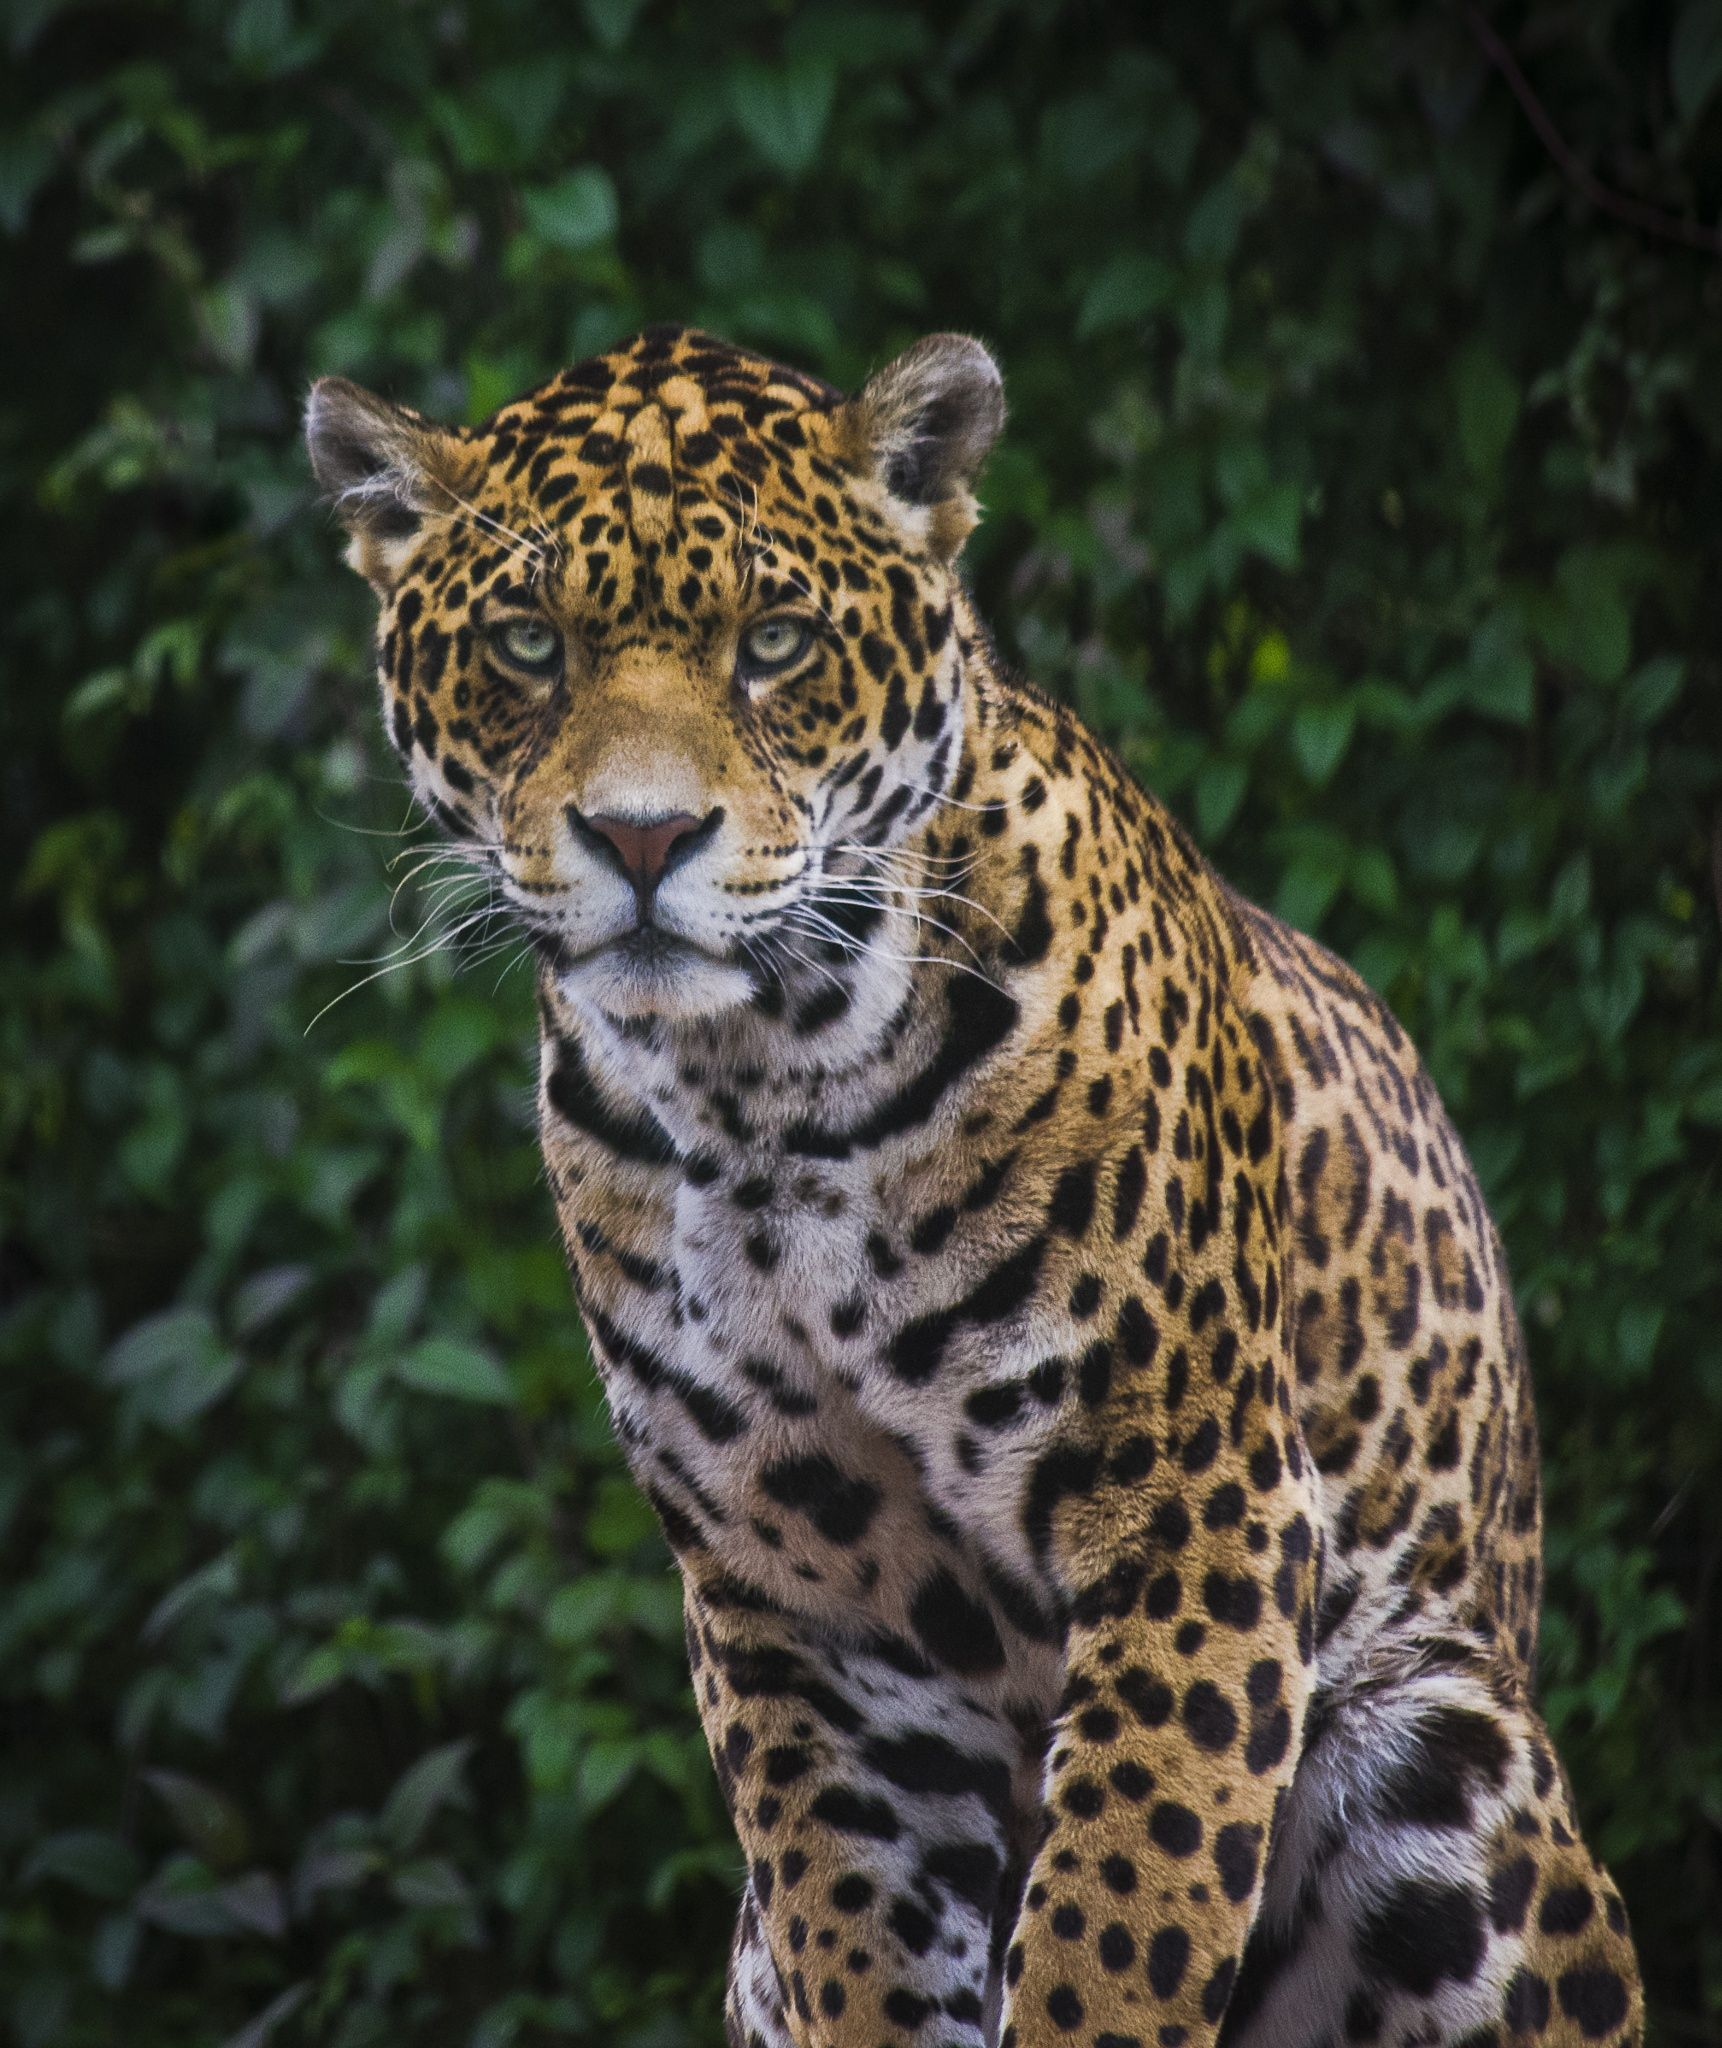 Jaguar ~ Count My Spots! ... Giggle